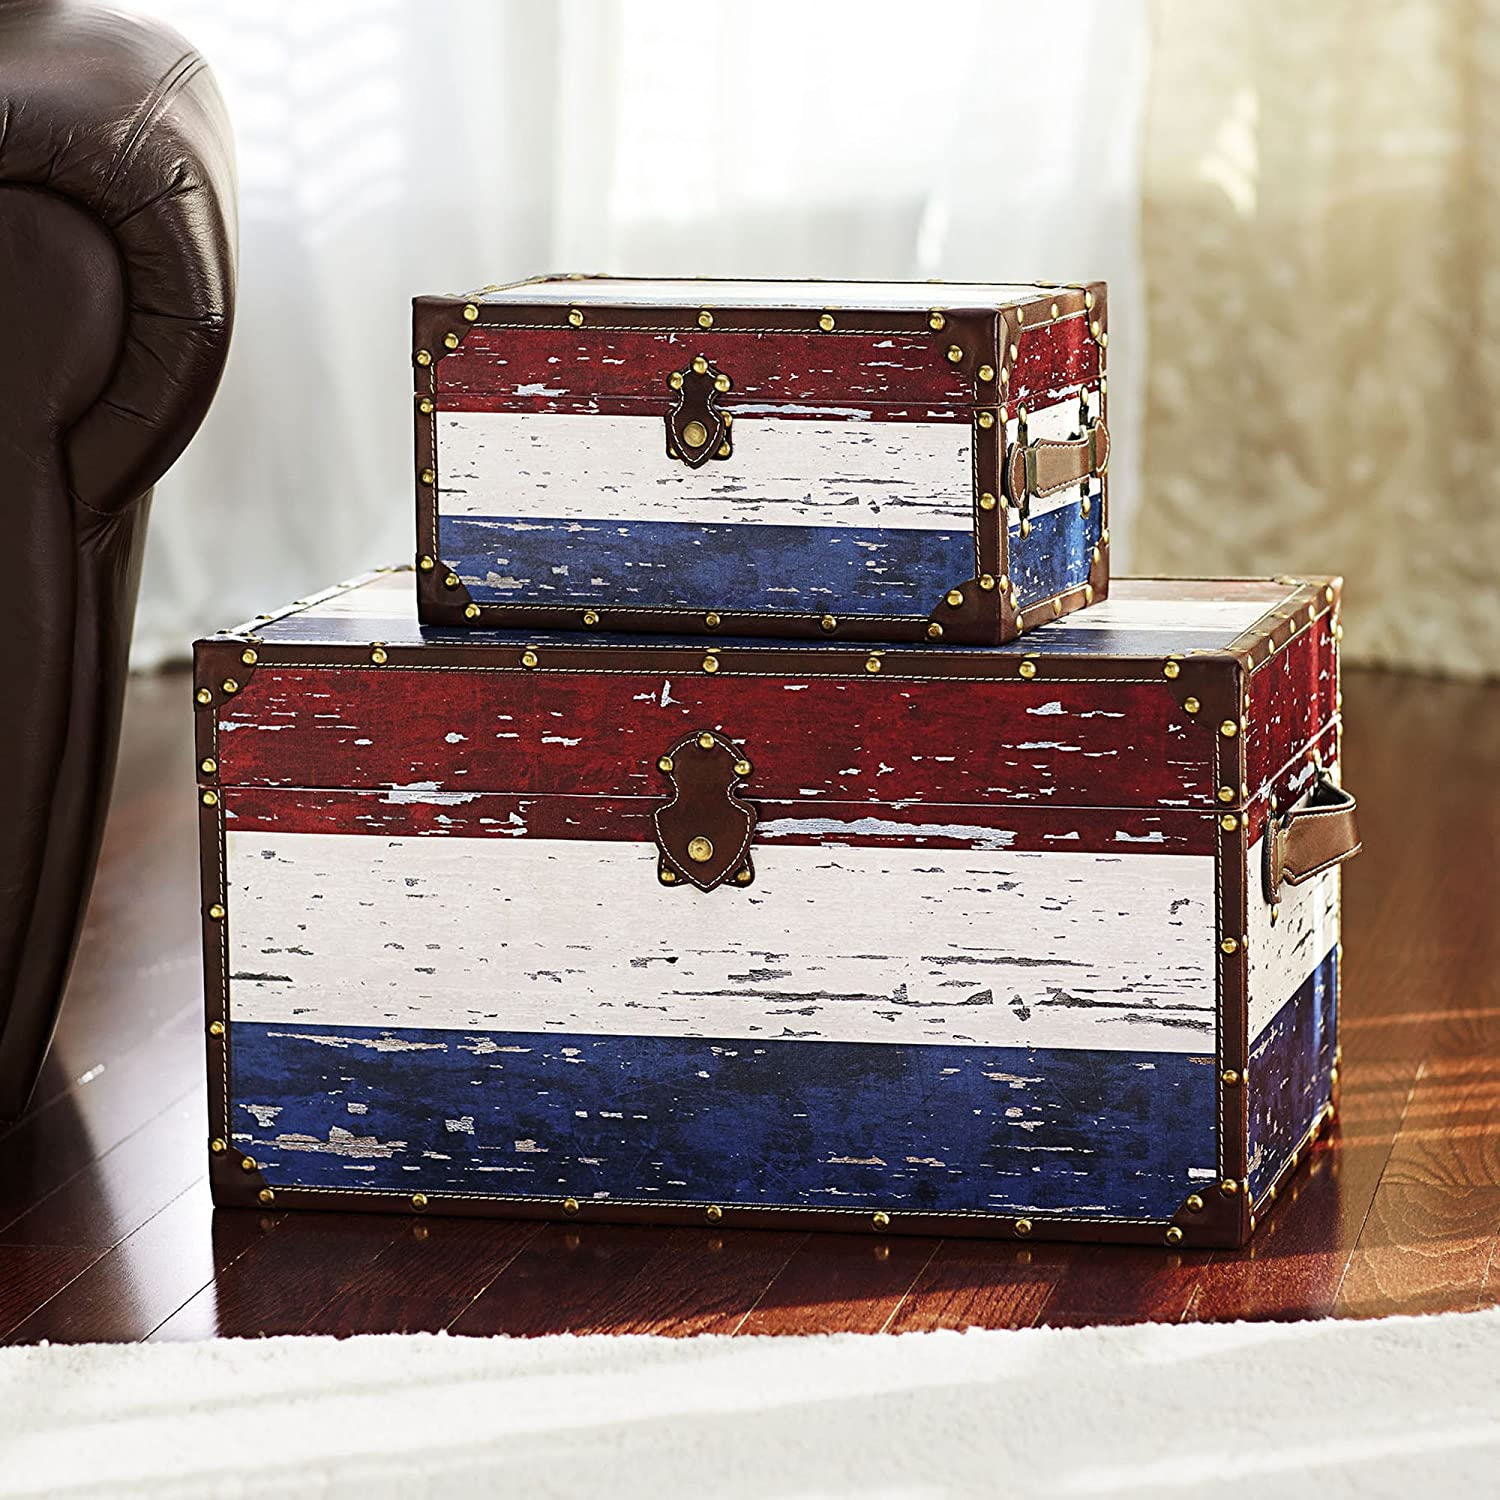 decor end add old decorative trunks table me fashioned mailgapp legs to vintage storage how coffee trunk a